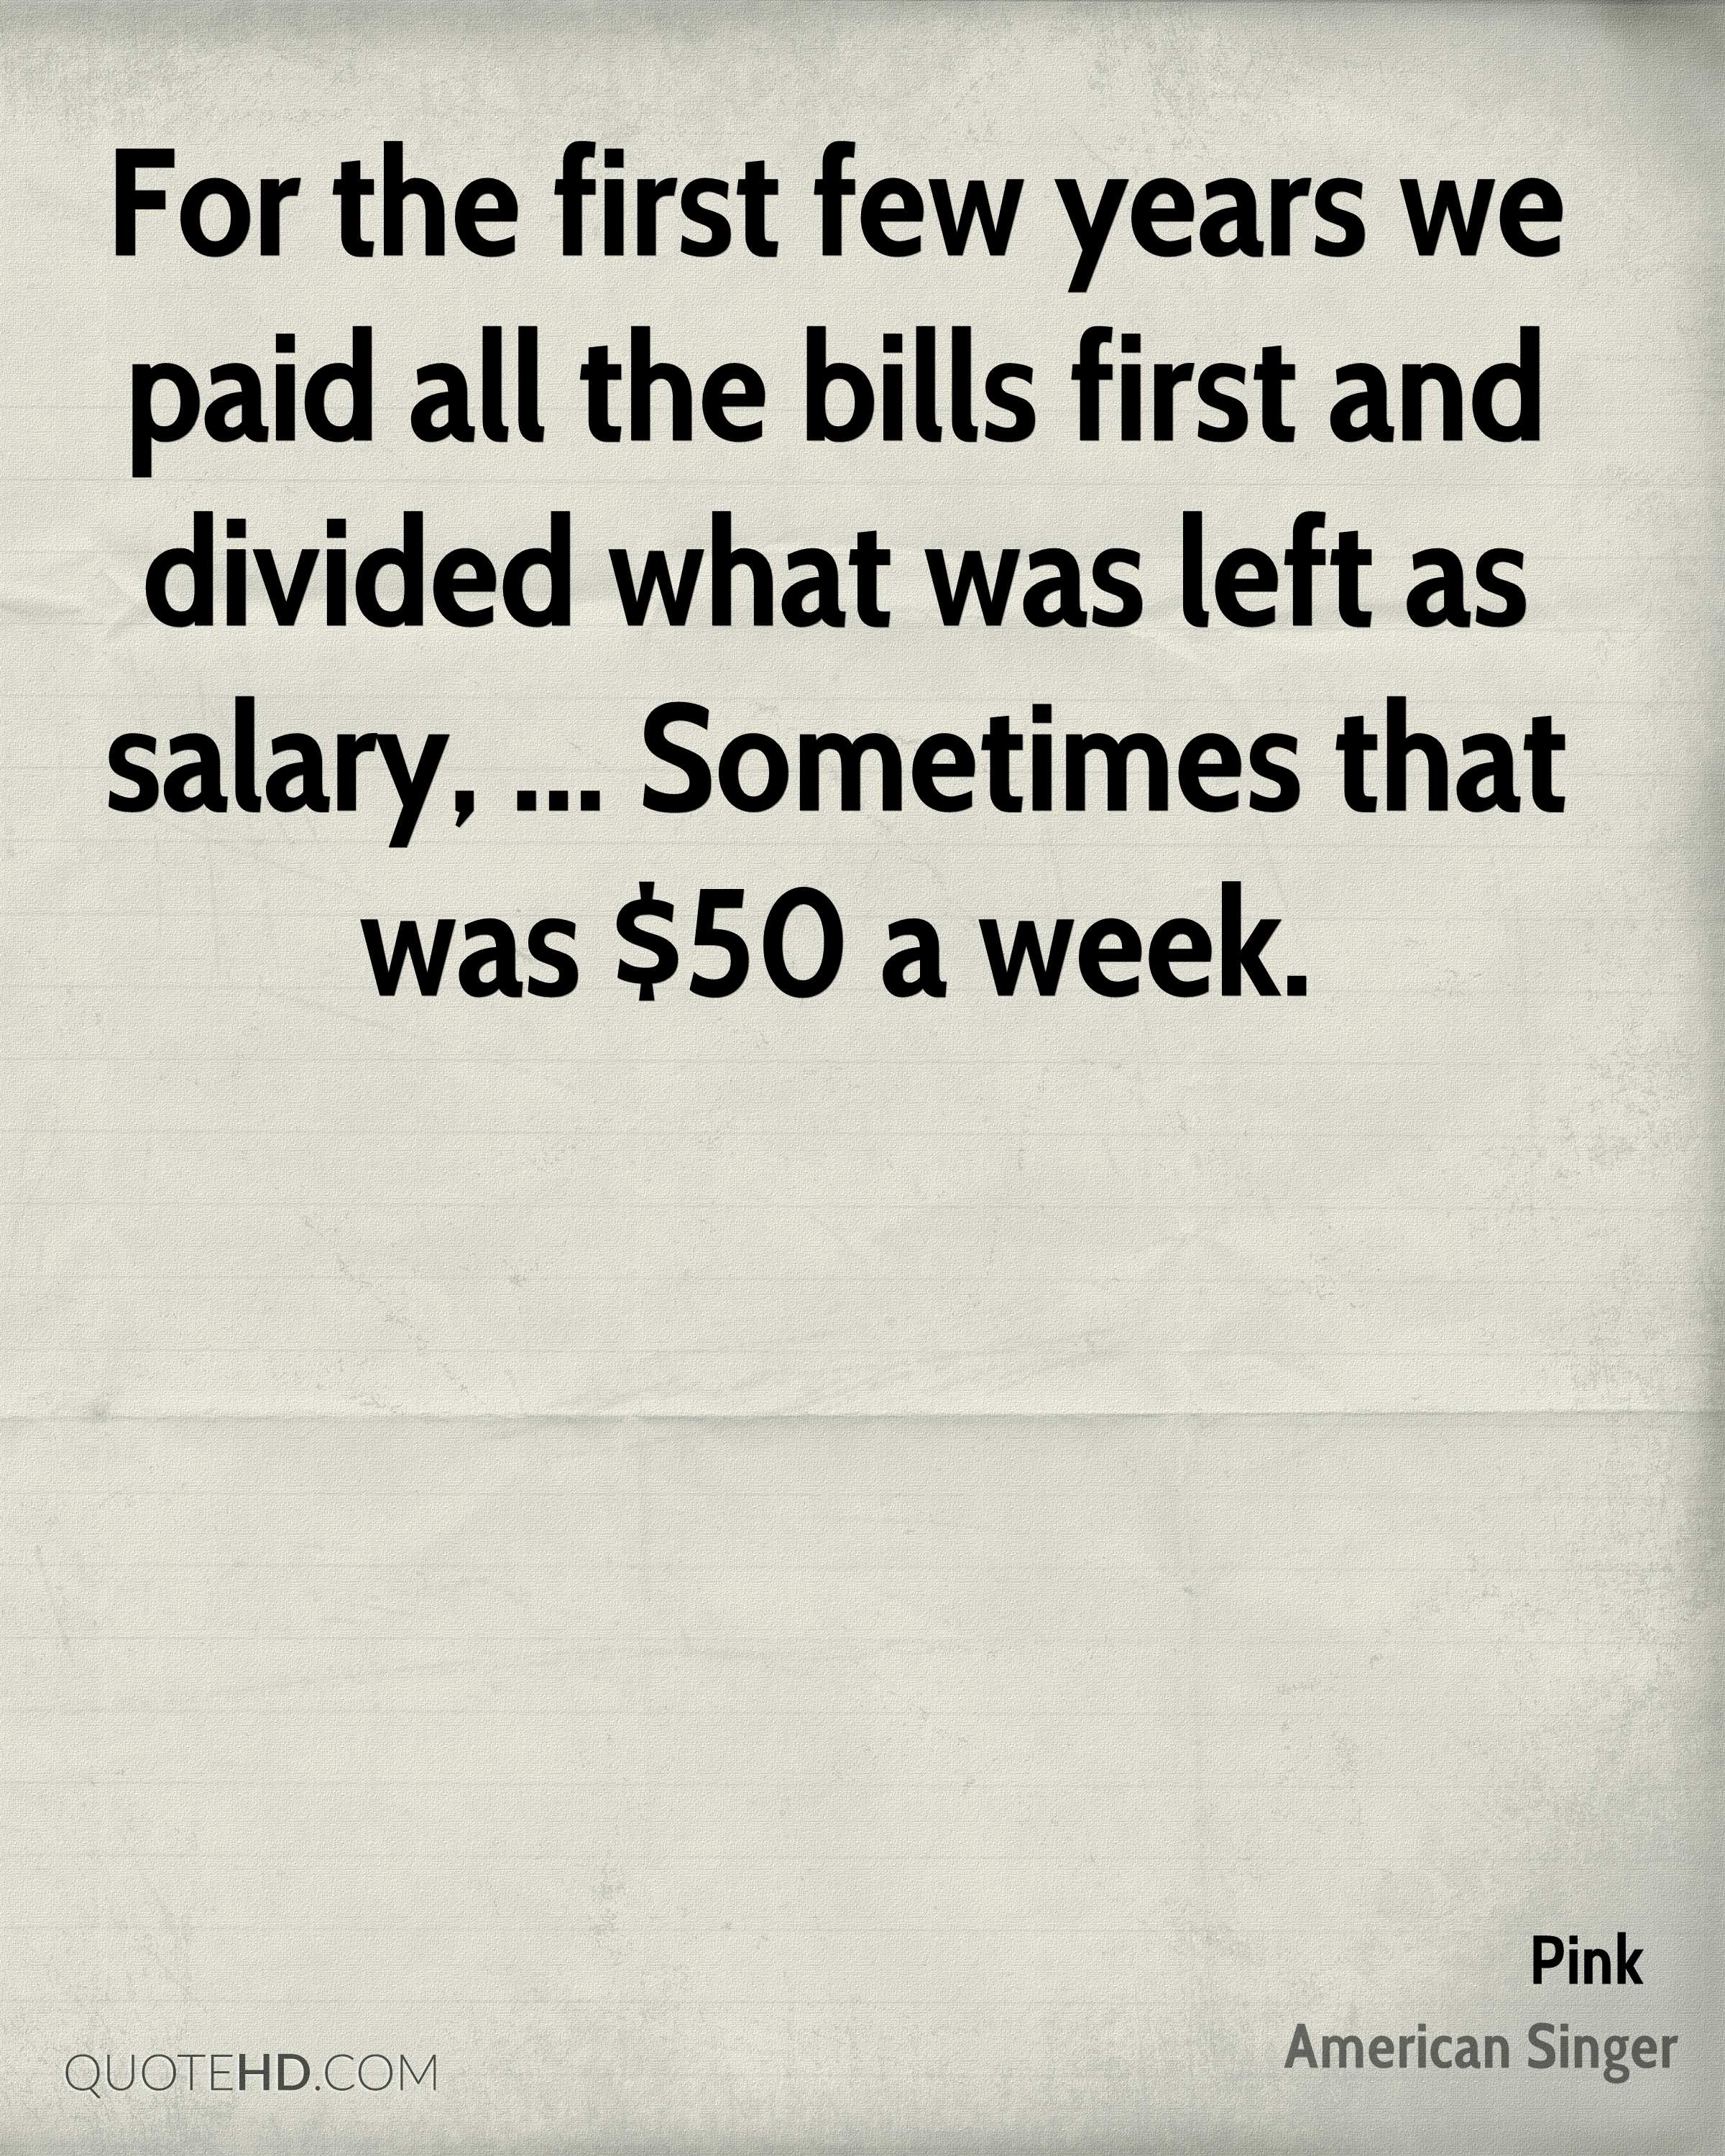 For the first few years we paid all the bills first and divided what was left as salary, ... Sometimes that was $50 a week.